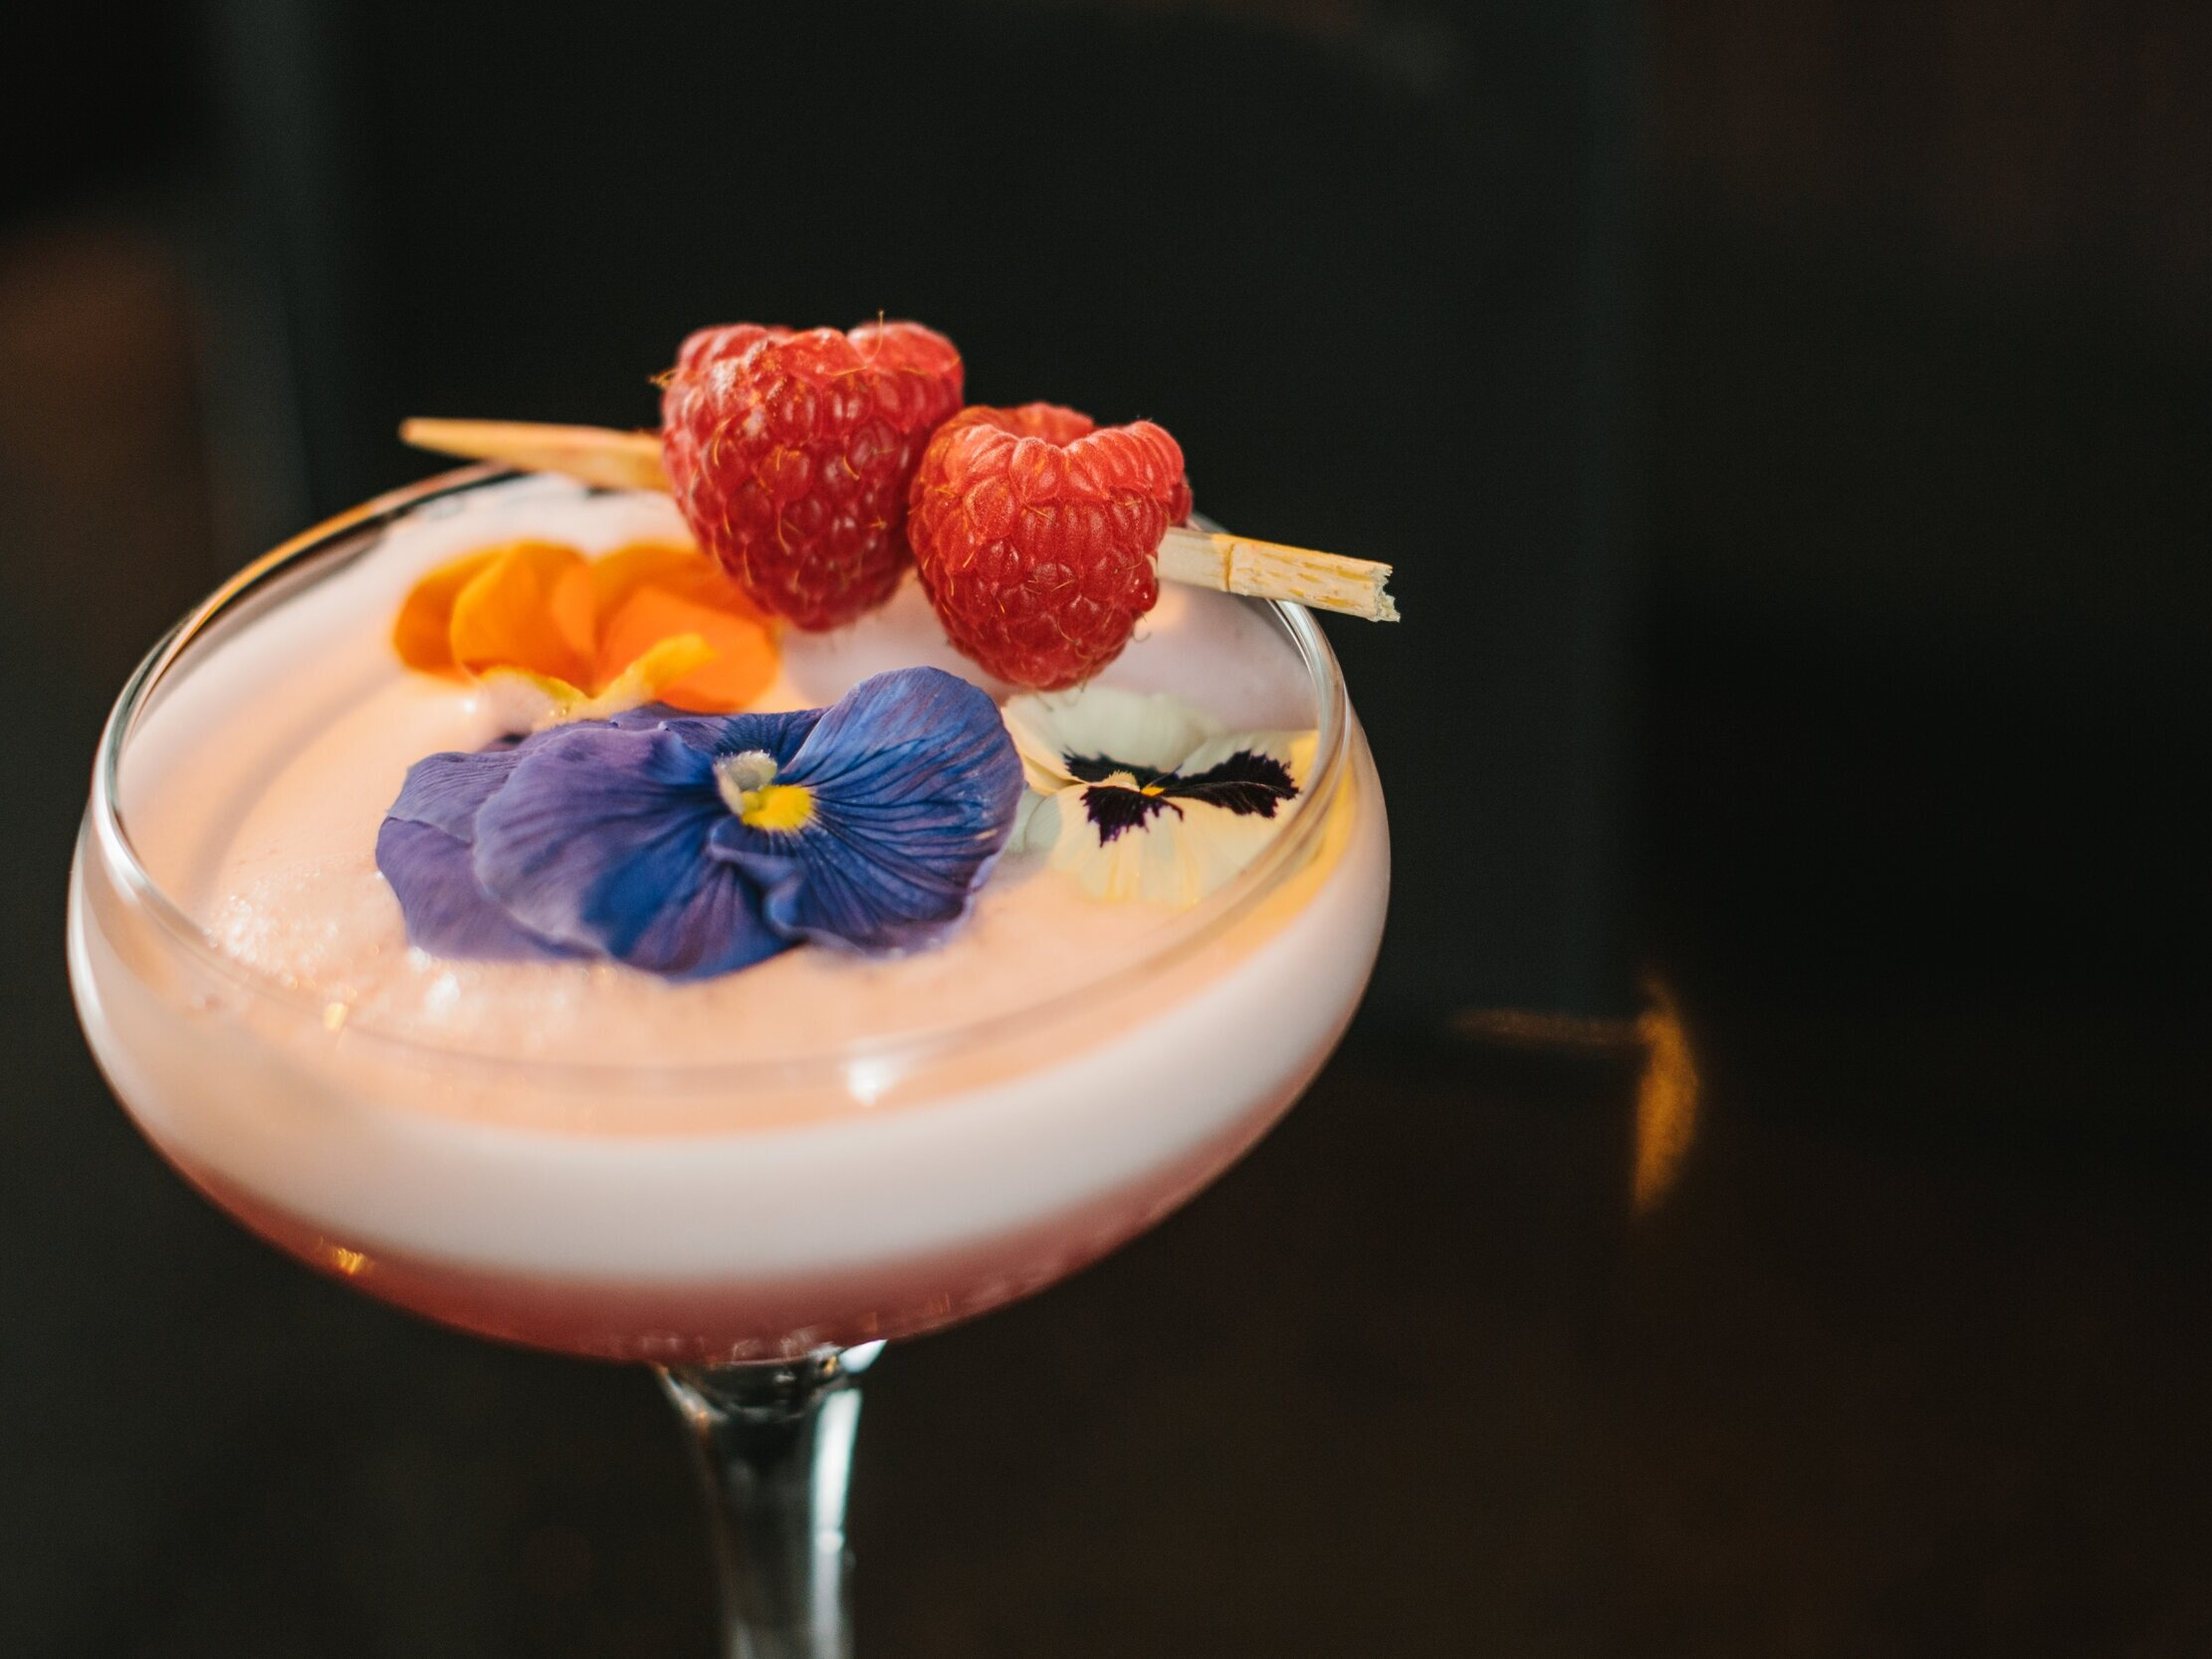 5 Cocktails for £5 each - Includes the Pornstar Martini, Drunk in Love, Life & Soul, Aperol Spritz and White Russian.